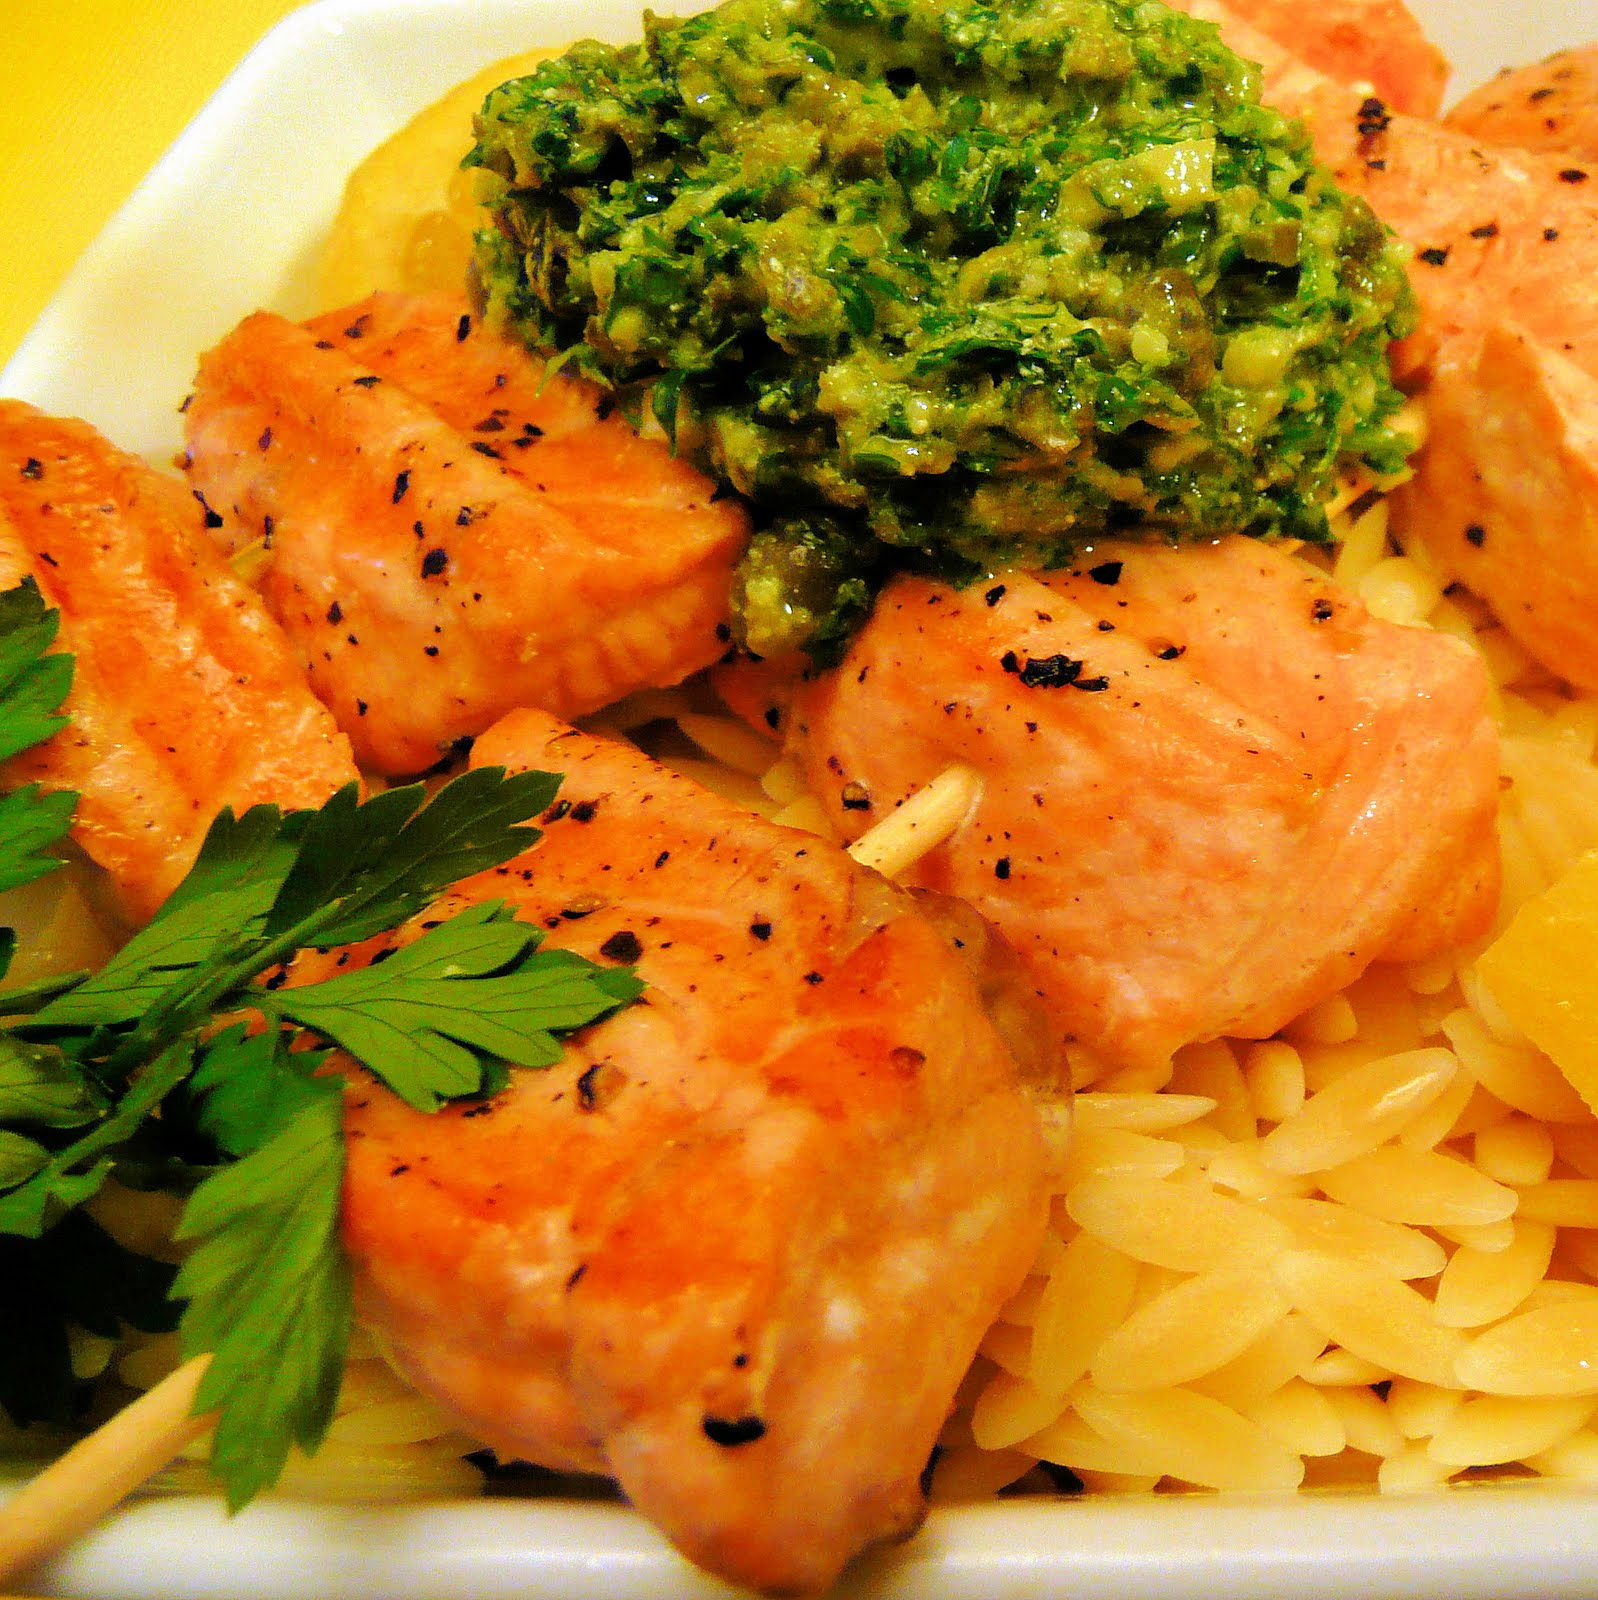 Salmon Skewers with Lemon-Parsley Pesto | I Can Cook That